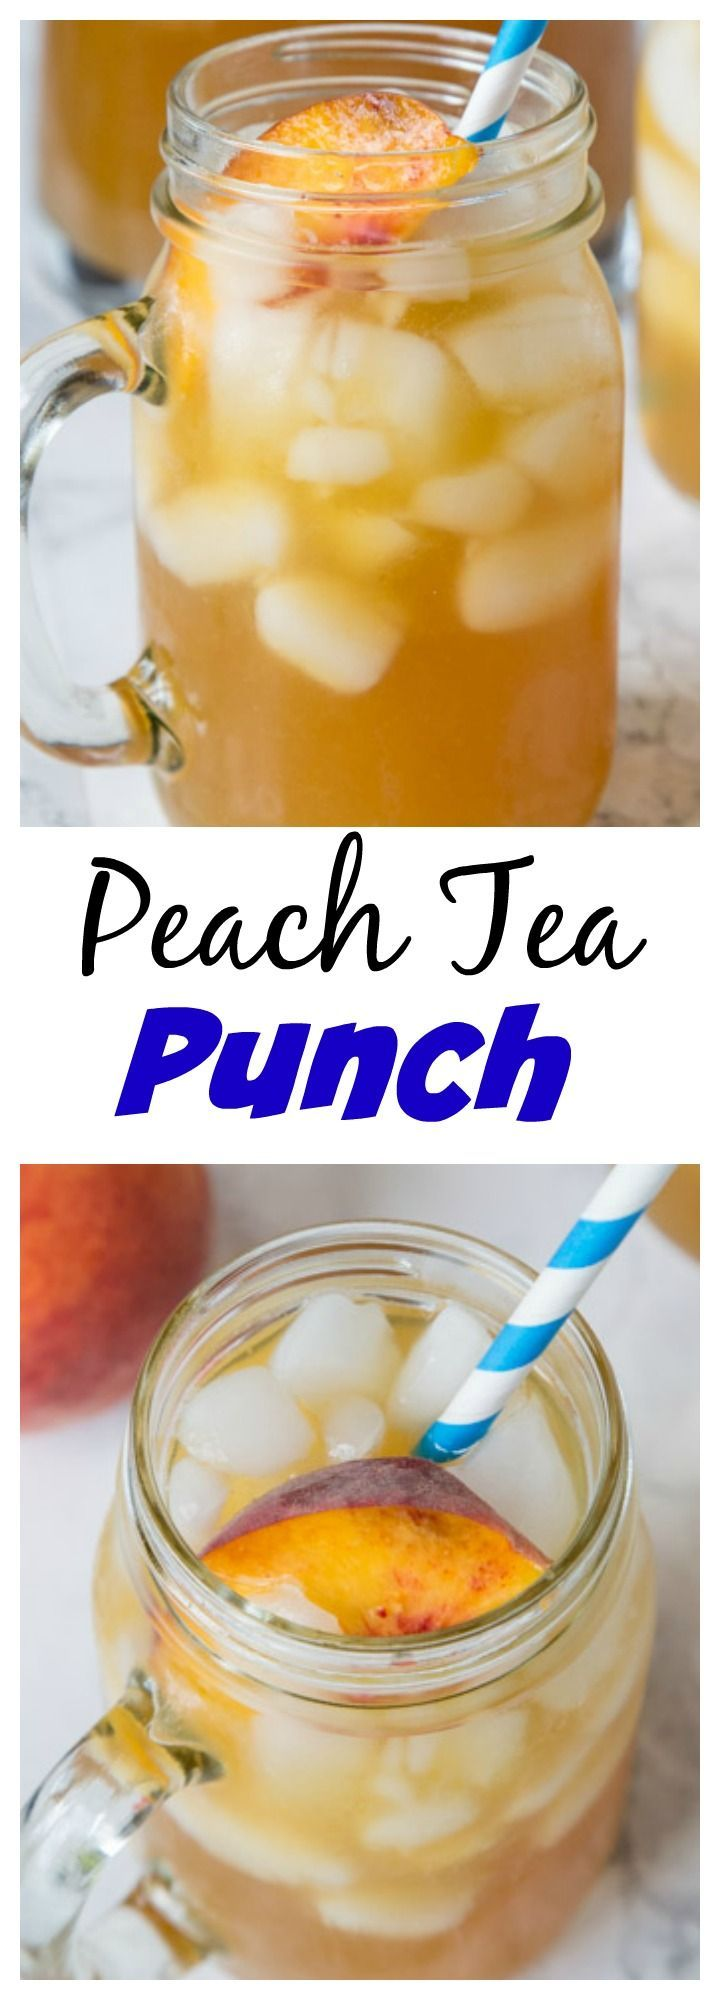 Peach Tea Punch – a refreshing and summery punch that is perfect for hot days!  And even better with fresh summer peaches.